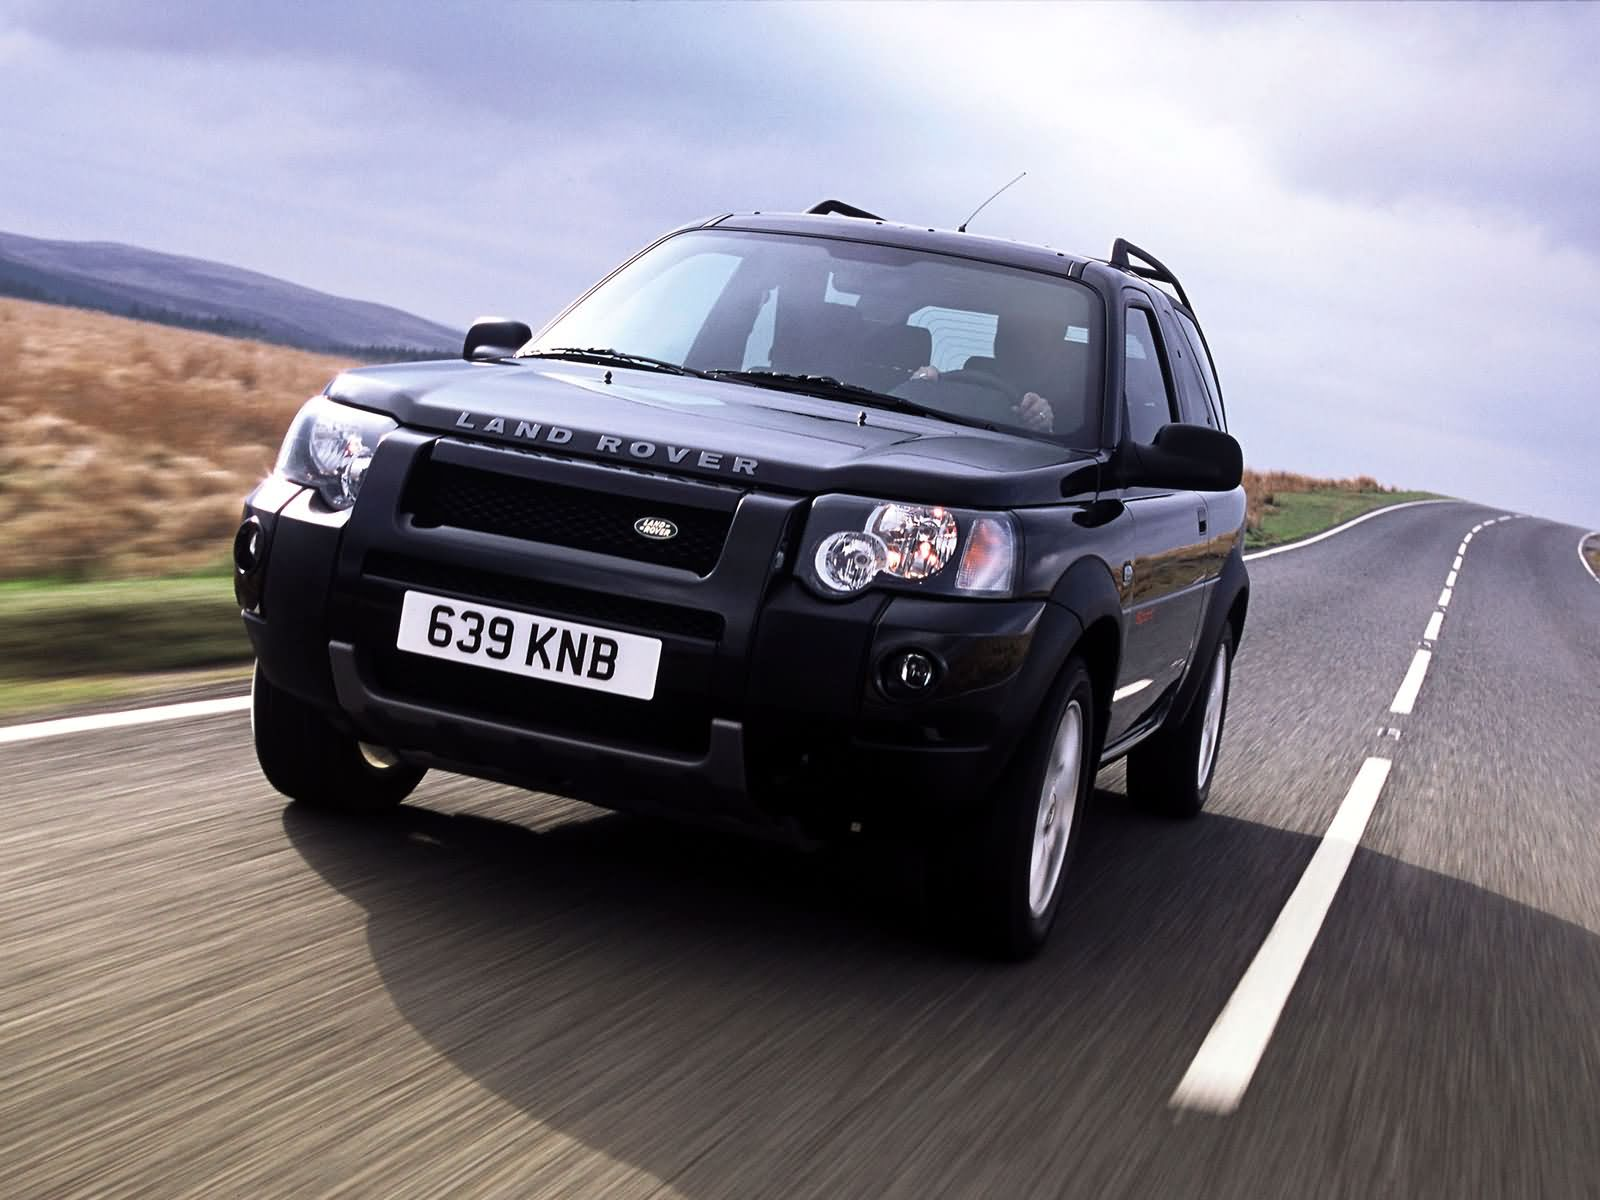 Land Rover Freelander photo #1391